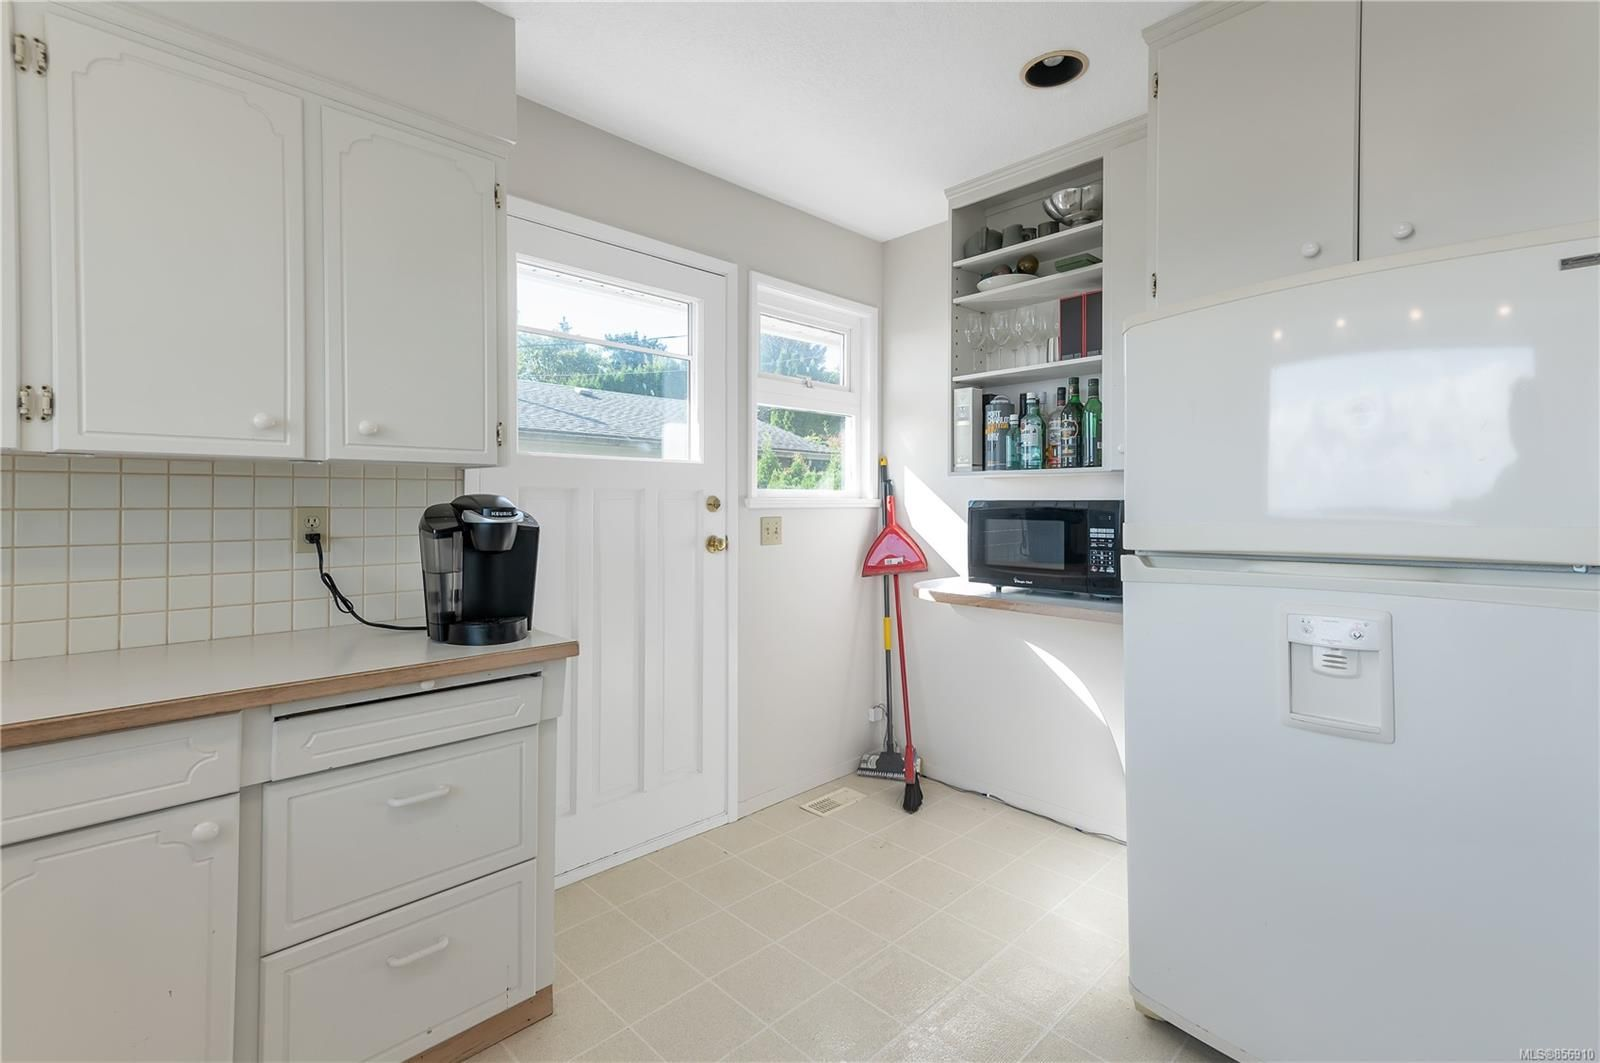 Photo 22: Photos: 215 S Alder St in : CR Campbell River Central House for sale (Campbell River)  : MLS®# 856910